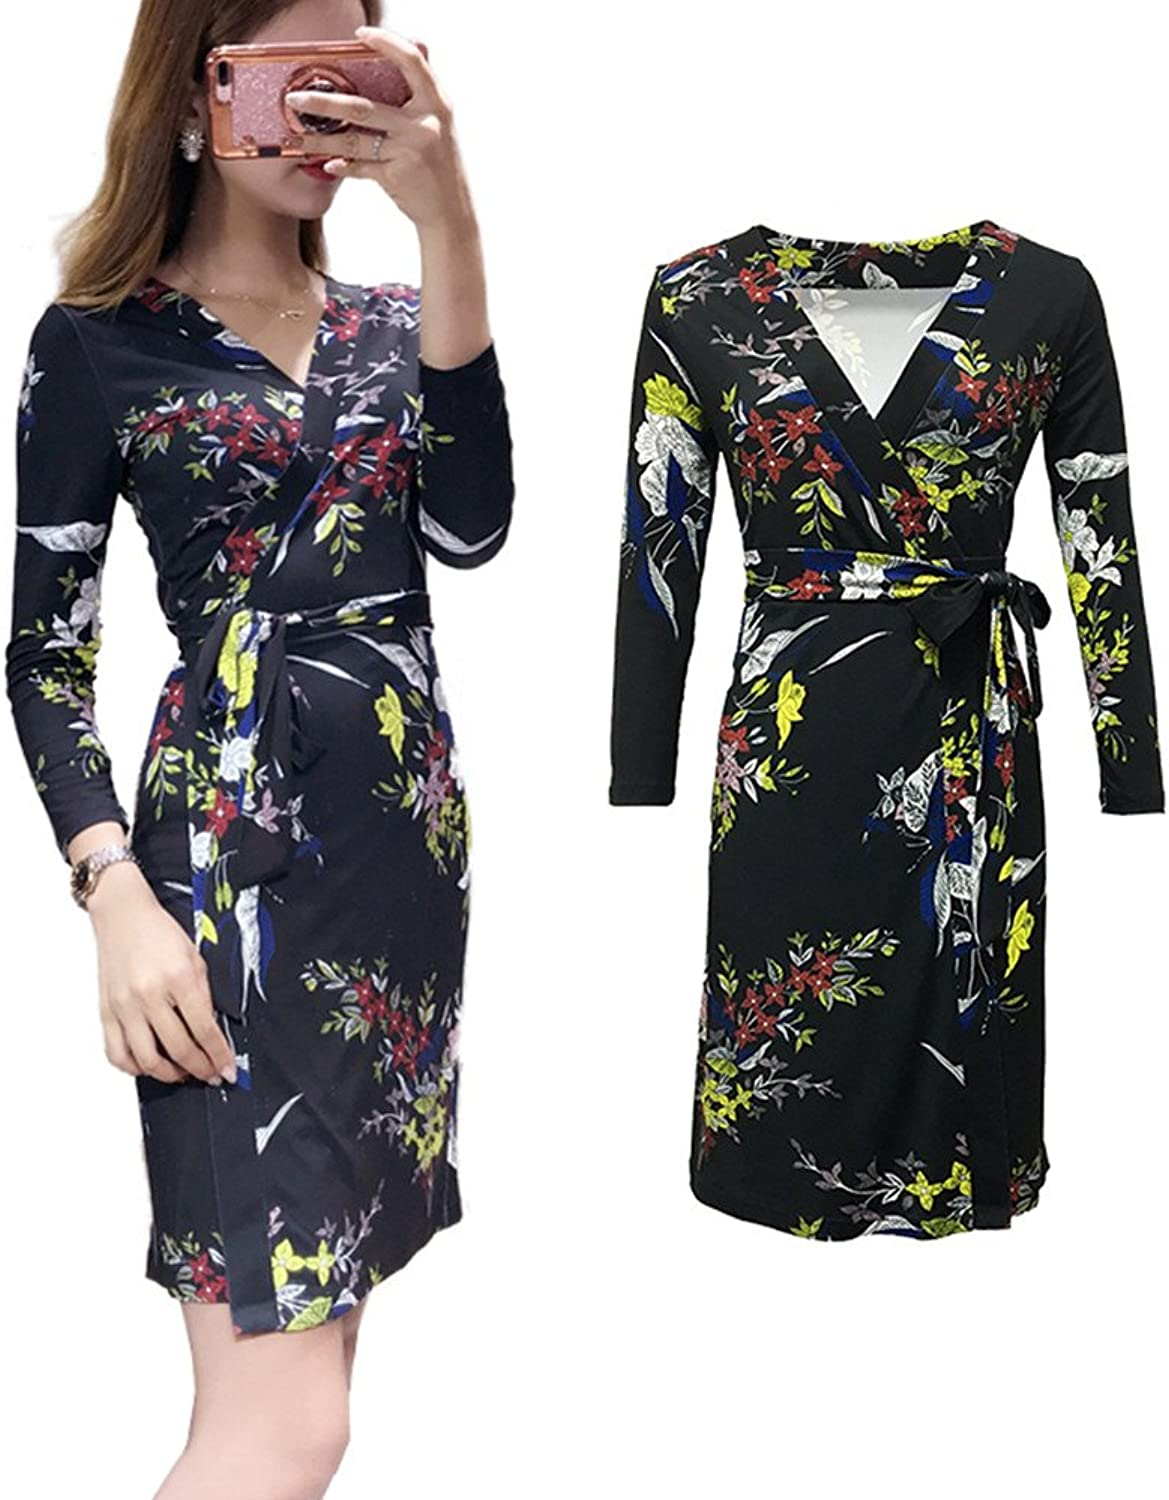 XC DVF Womens Digital Floral Printed Party Maxi Bohemian Floral Wrap Dress with Belt